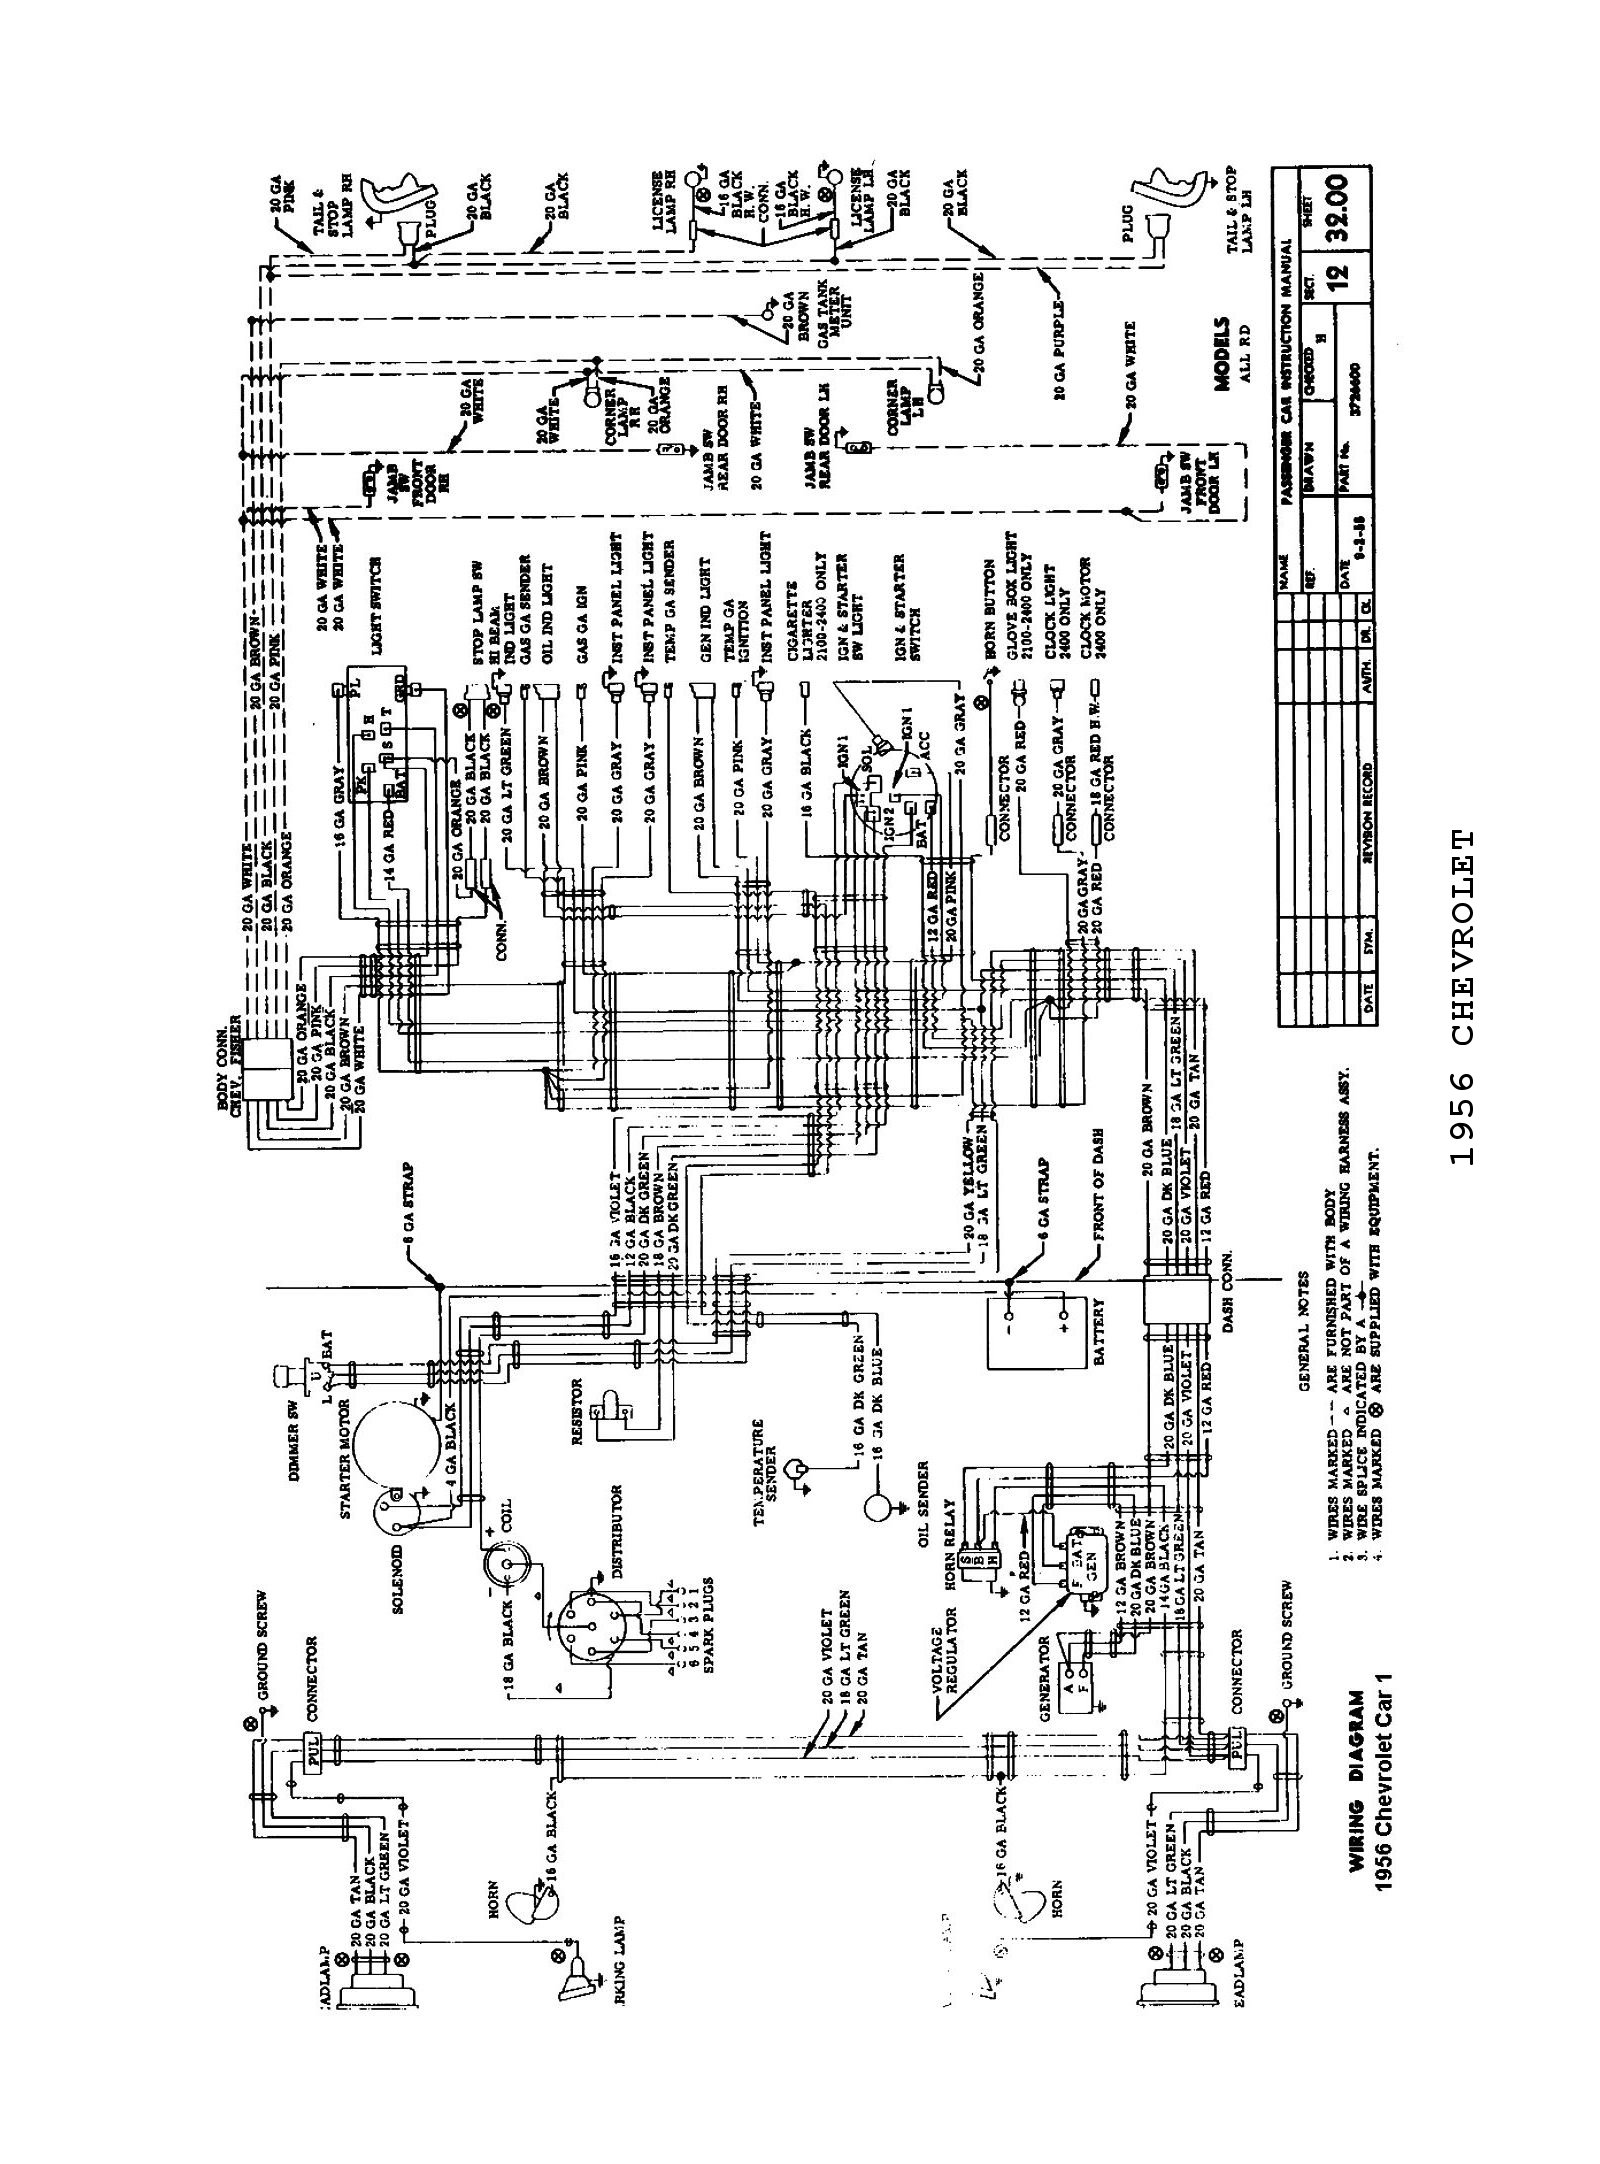 hight resolution of 1959 oldsmobile wiring diagram